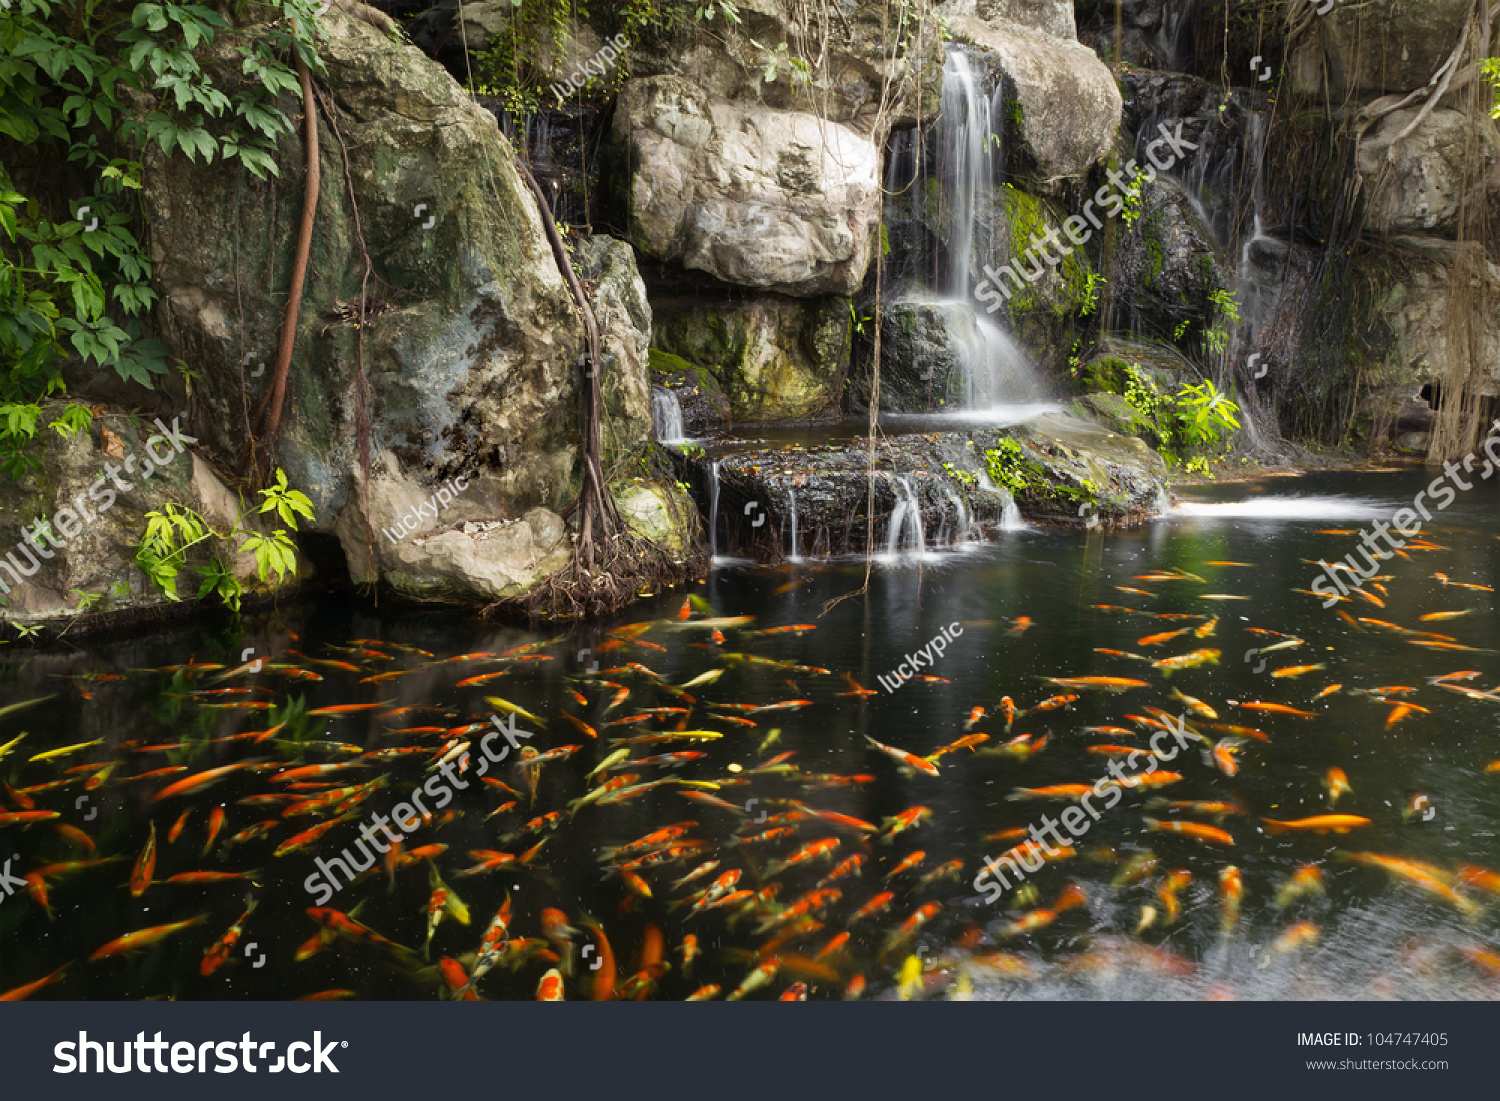 Koi fish in pond at the garden with a waterfall stock for Koi waterfall